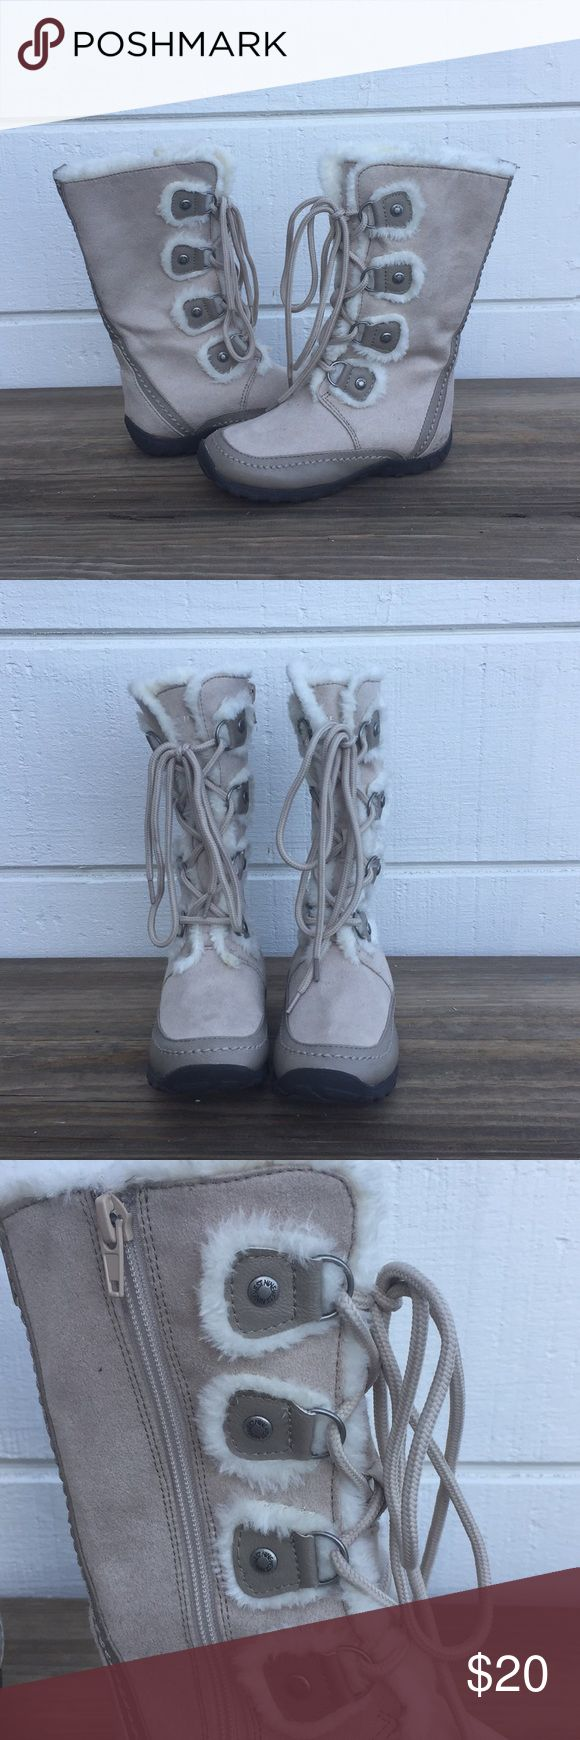 NWOT! Nine West Fur Lined Boots! NWOT!! Nine West fur lined boots. Zips up the side for easy on and off. Laces up front to adjust the fit from ankle up.  Size 11 Nine West Shoes Boots